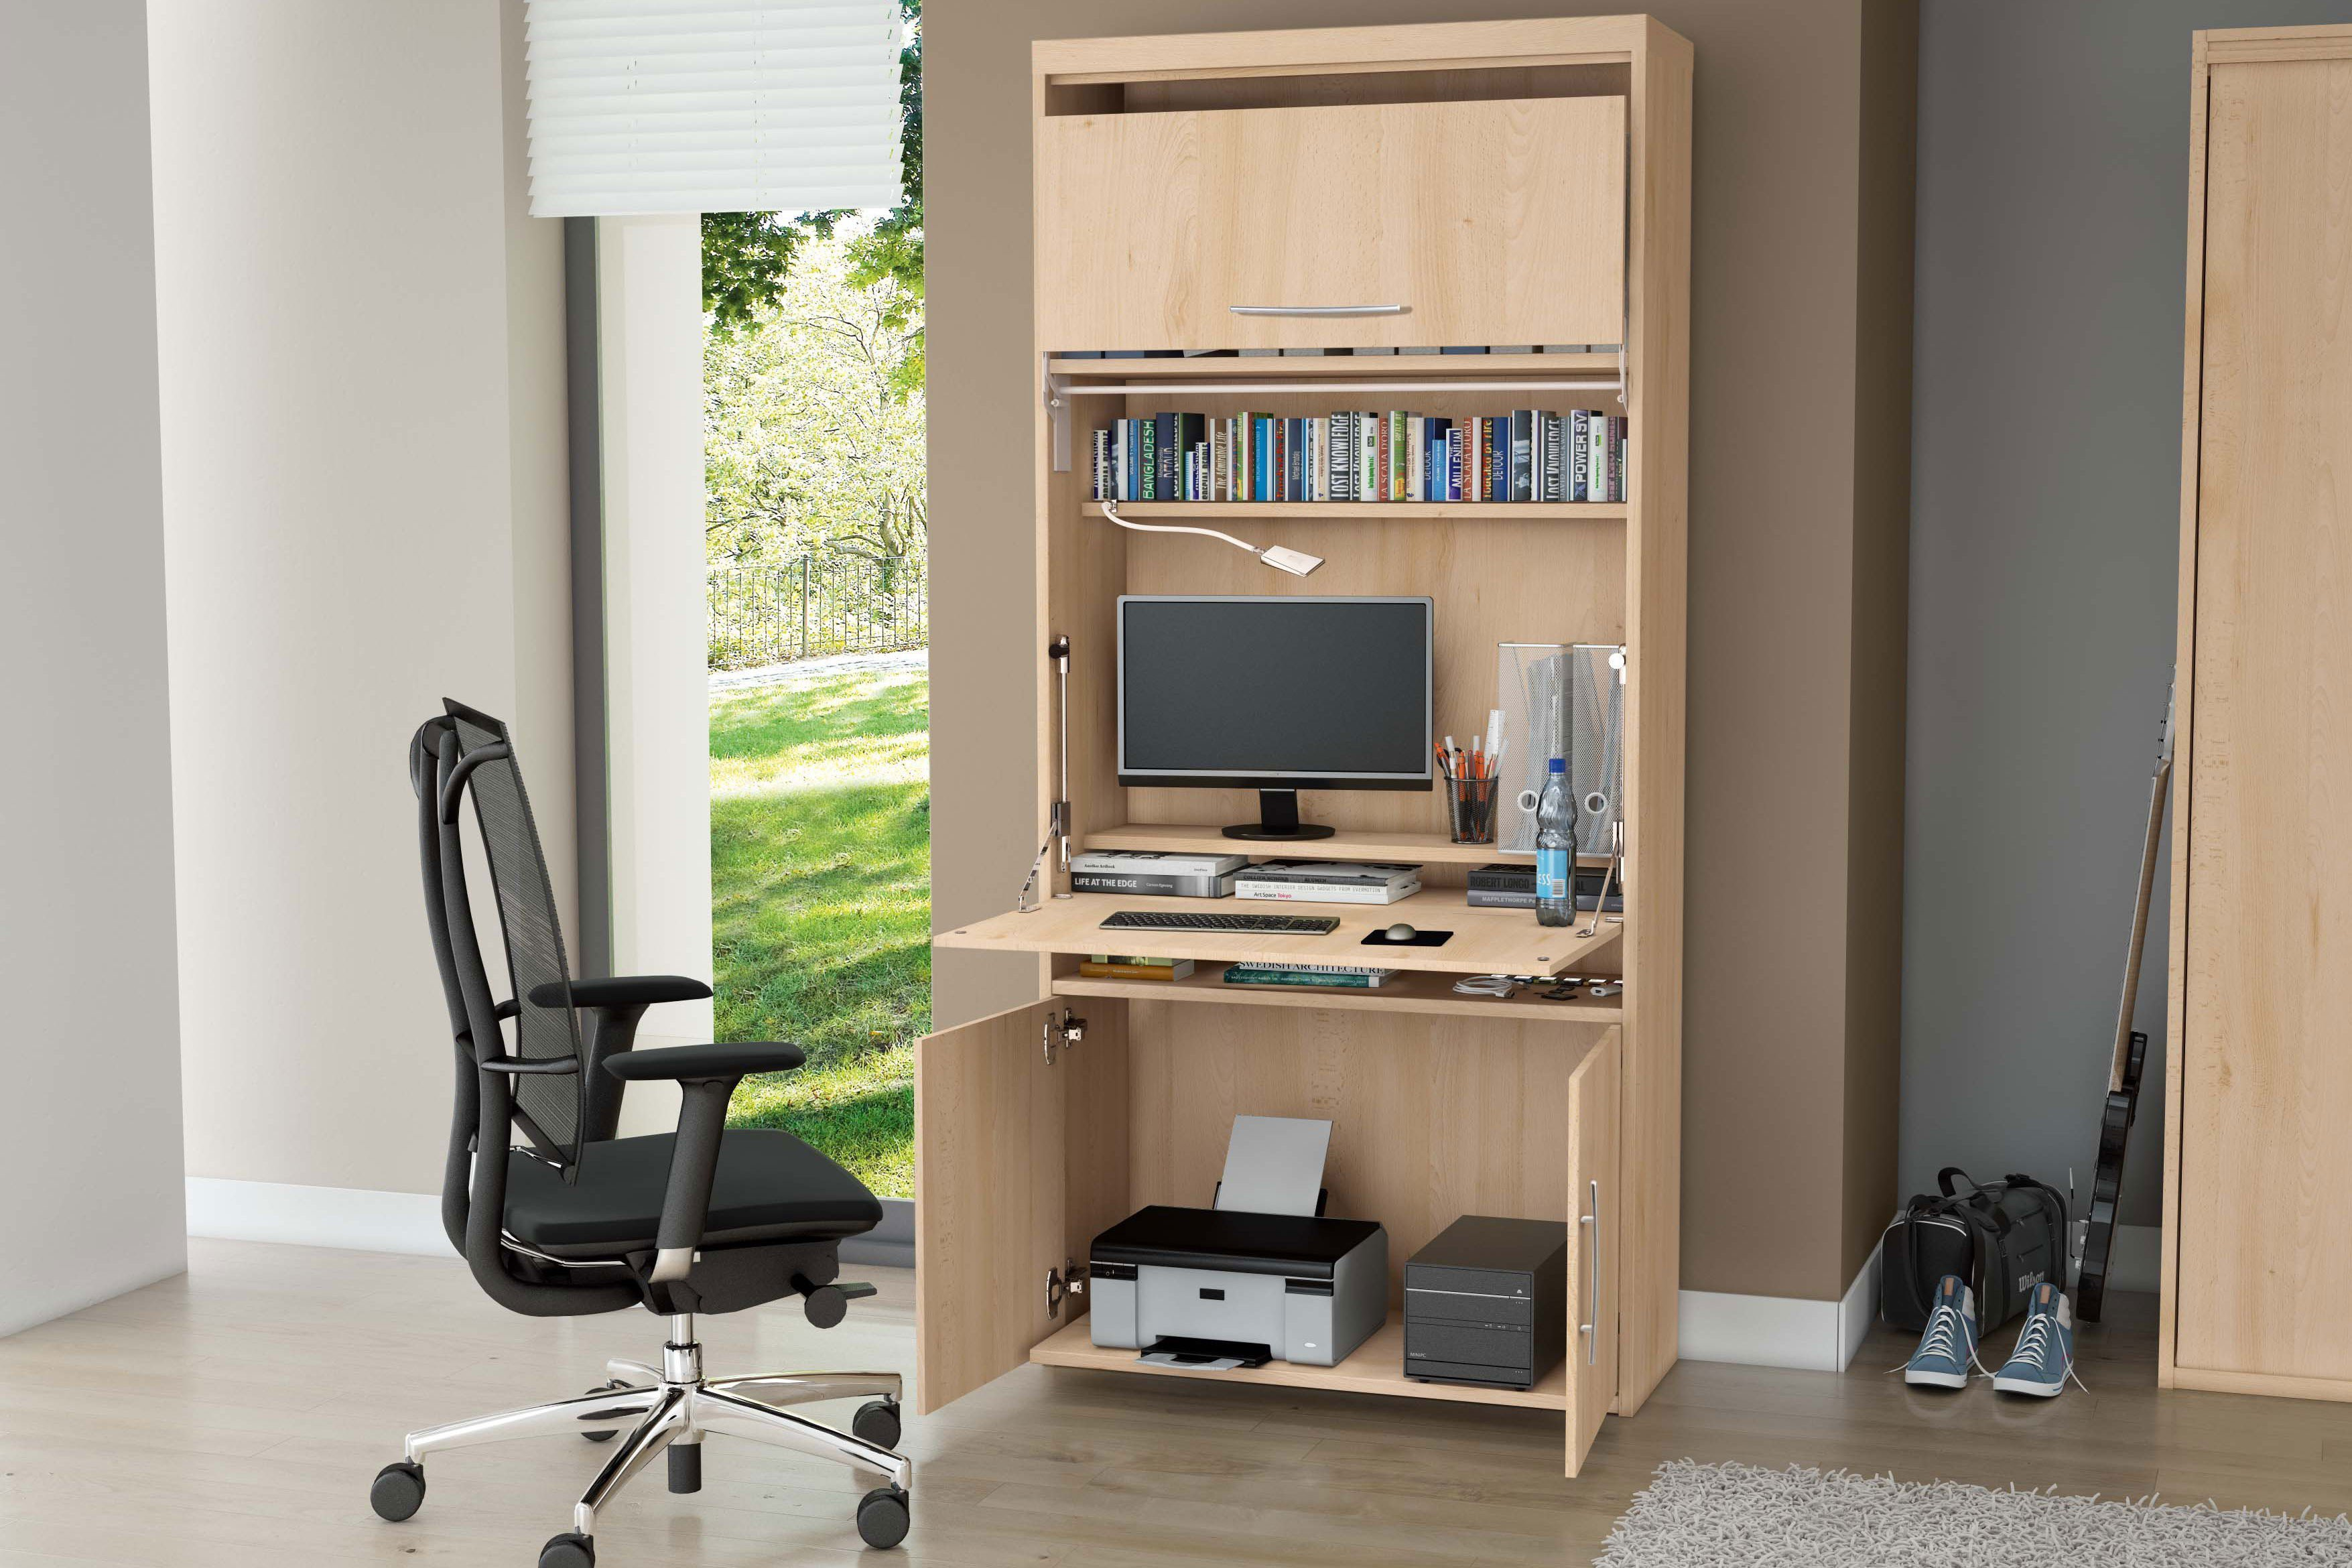 priess sekret r home office buche m bel letz ihr online shop. Black Bedroom Furniture Sets. Home Design Ideas